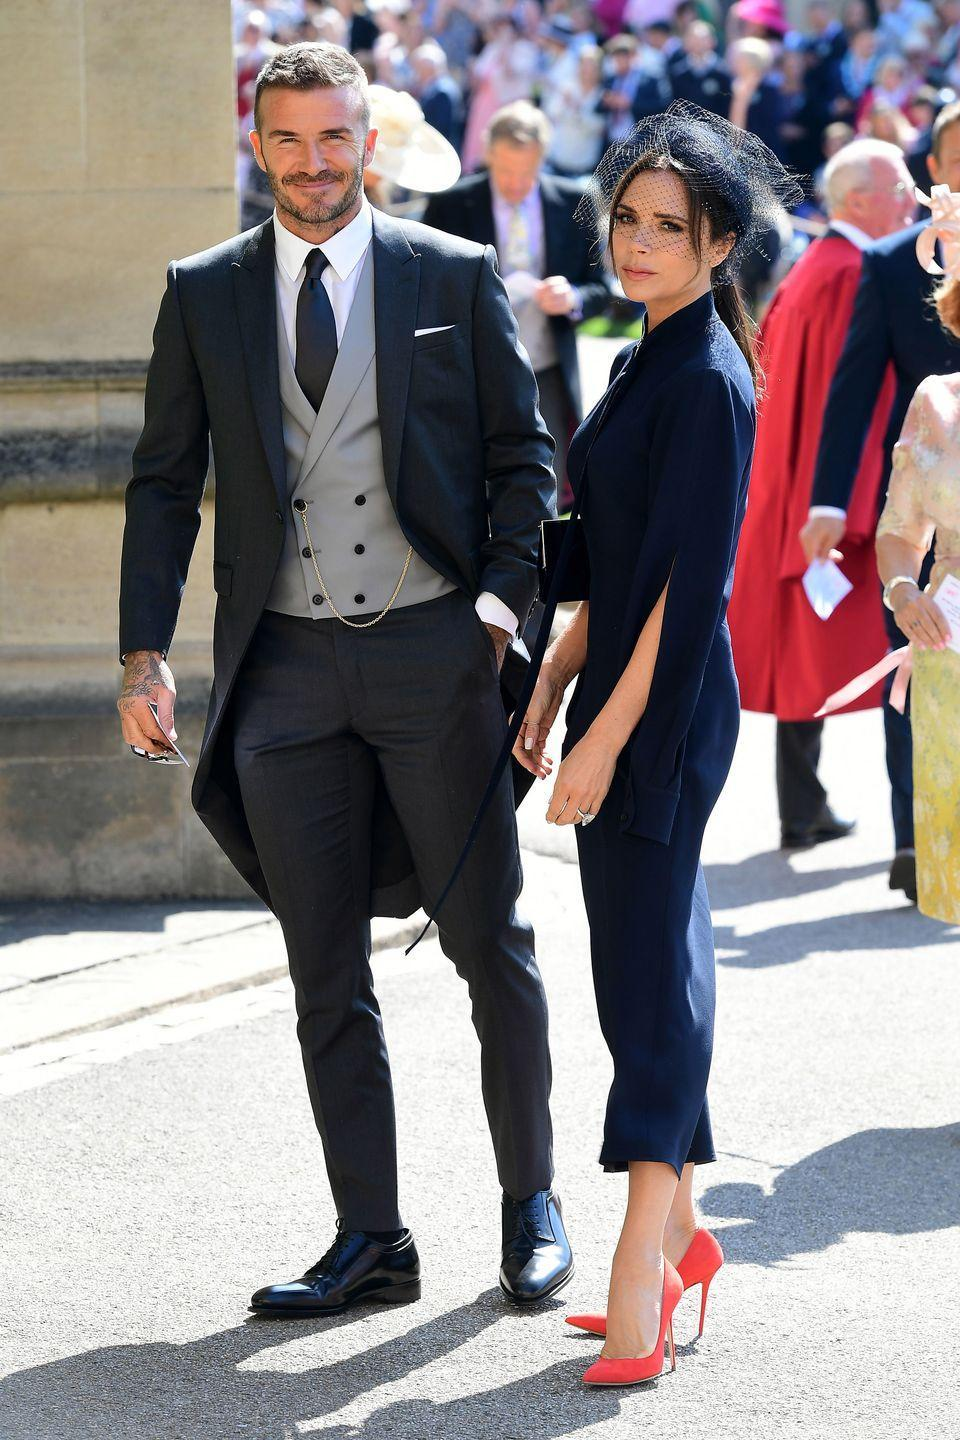 """<p>If you're lucky enough to score an invite to a royal wedding, leave the wacky outfit choices for the Met Gala. At royal weddings, you're <a href=""""https://www.townandcountrymag.com/style/fashion-trends/a19563646/prince-harry-meghan-markle-royal-wedding-dress-code/"""" rel=""""nofollow noopener"""" target=""""_blank"""" data-ylk=""""slk:expected to wear"""" class=""""link rapid-noclick-resp"""">expected to wear</a> traditional dresses in bold colors or subtle patterns paired with a hat, always!</p>"""